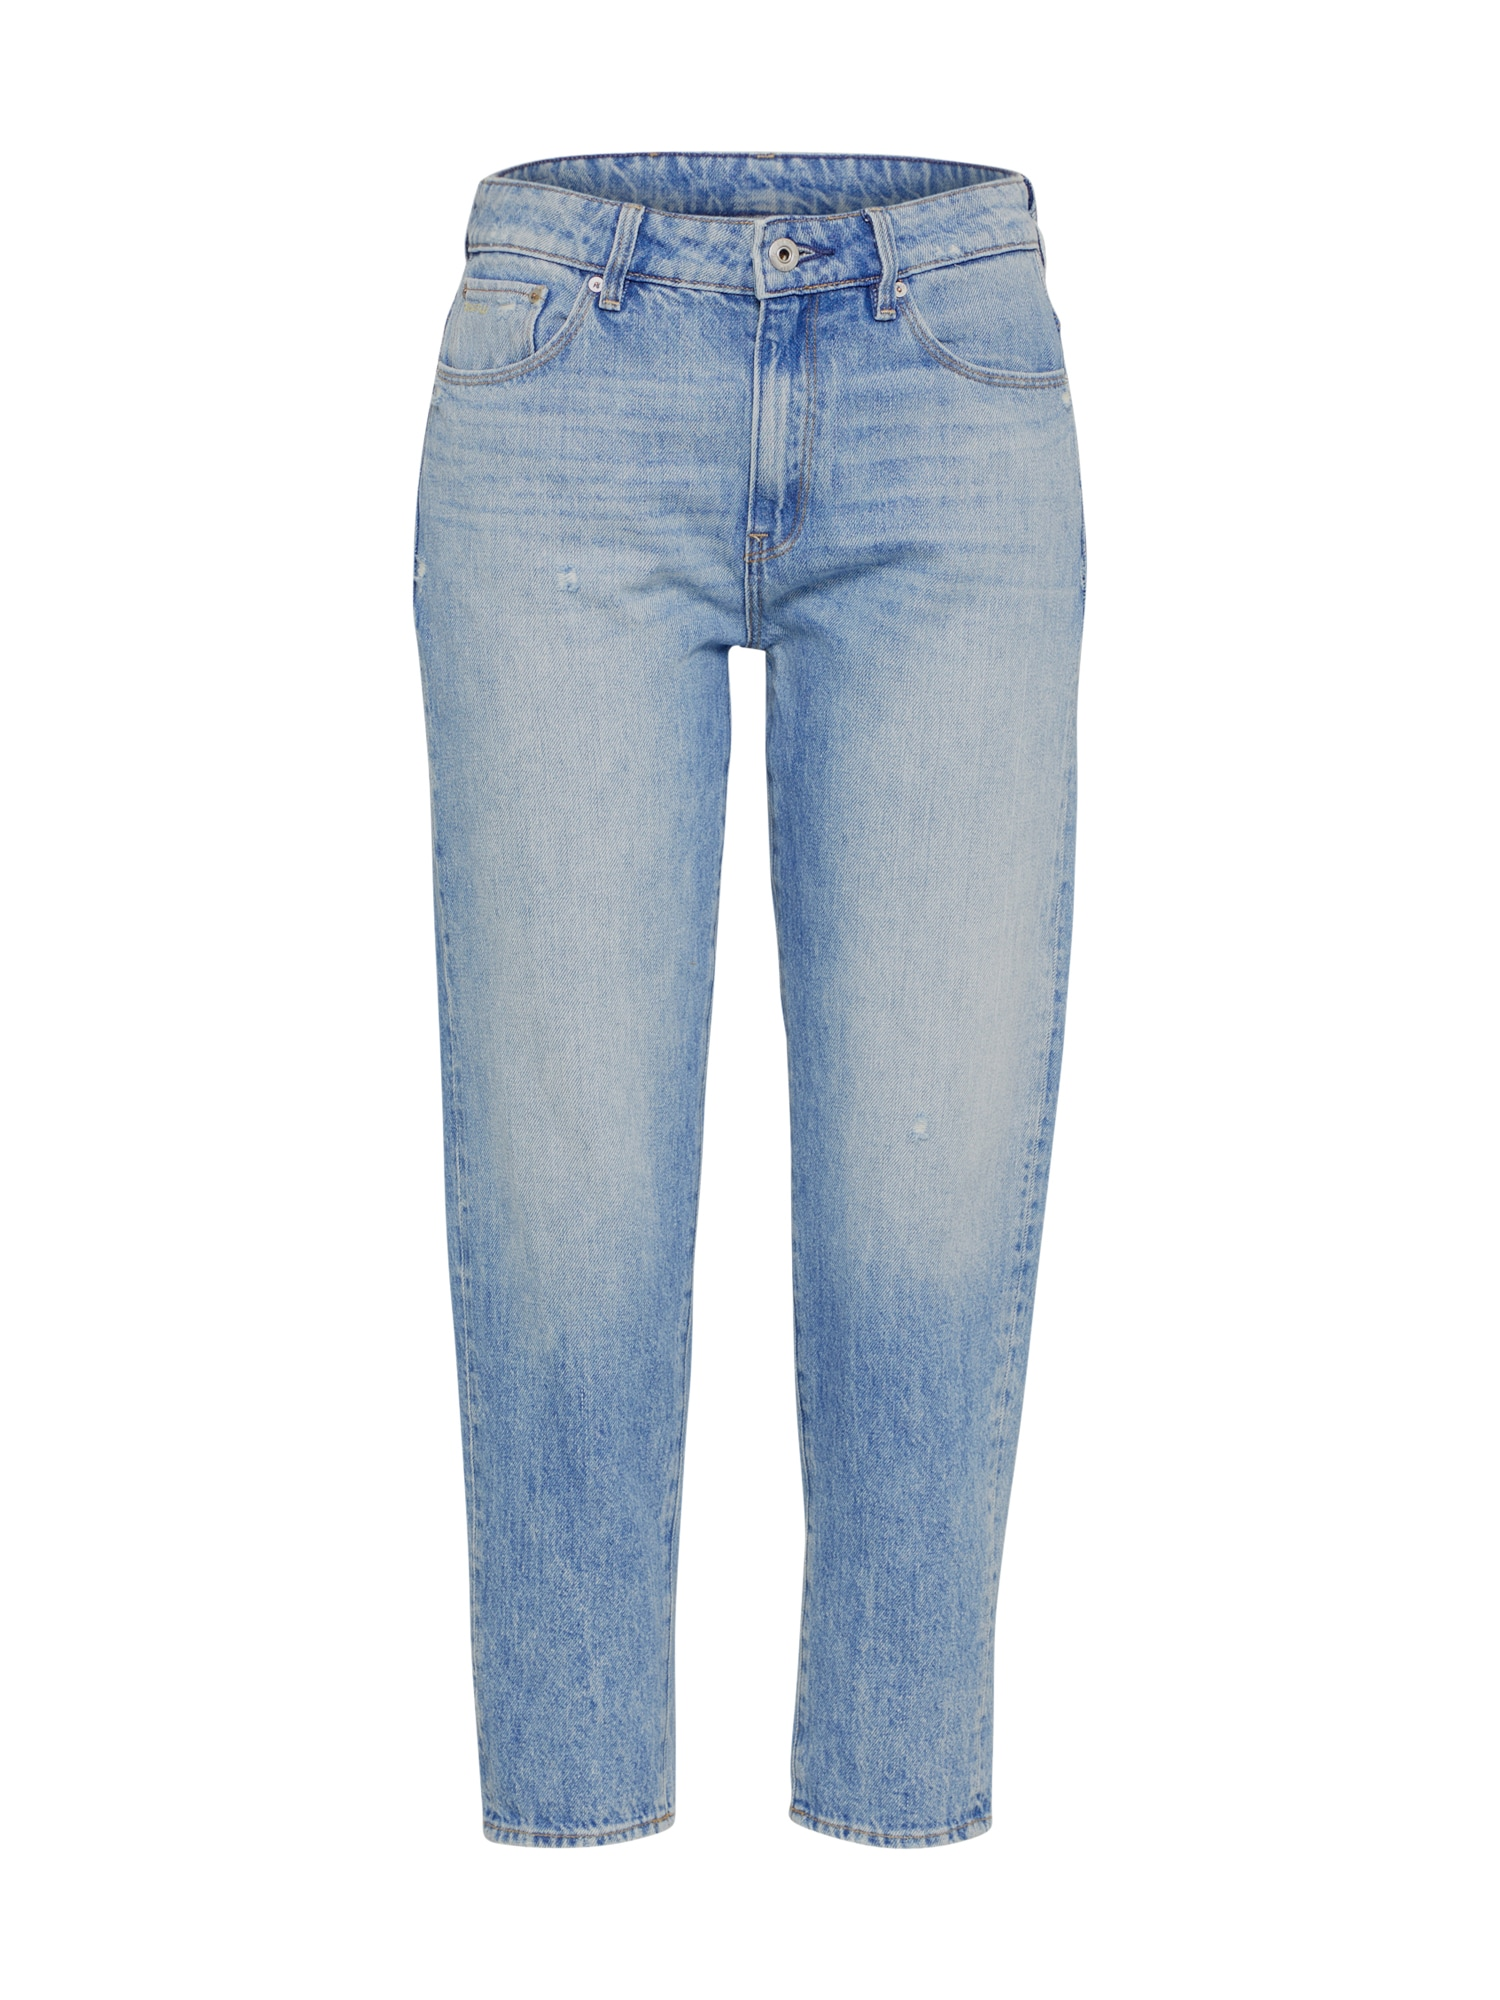 G-STAR RAW Dames Jeans Boyfriend blauw